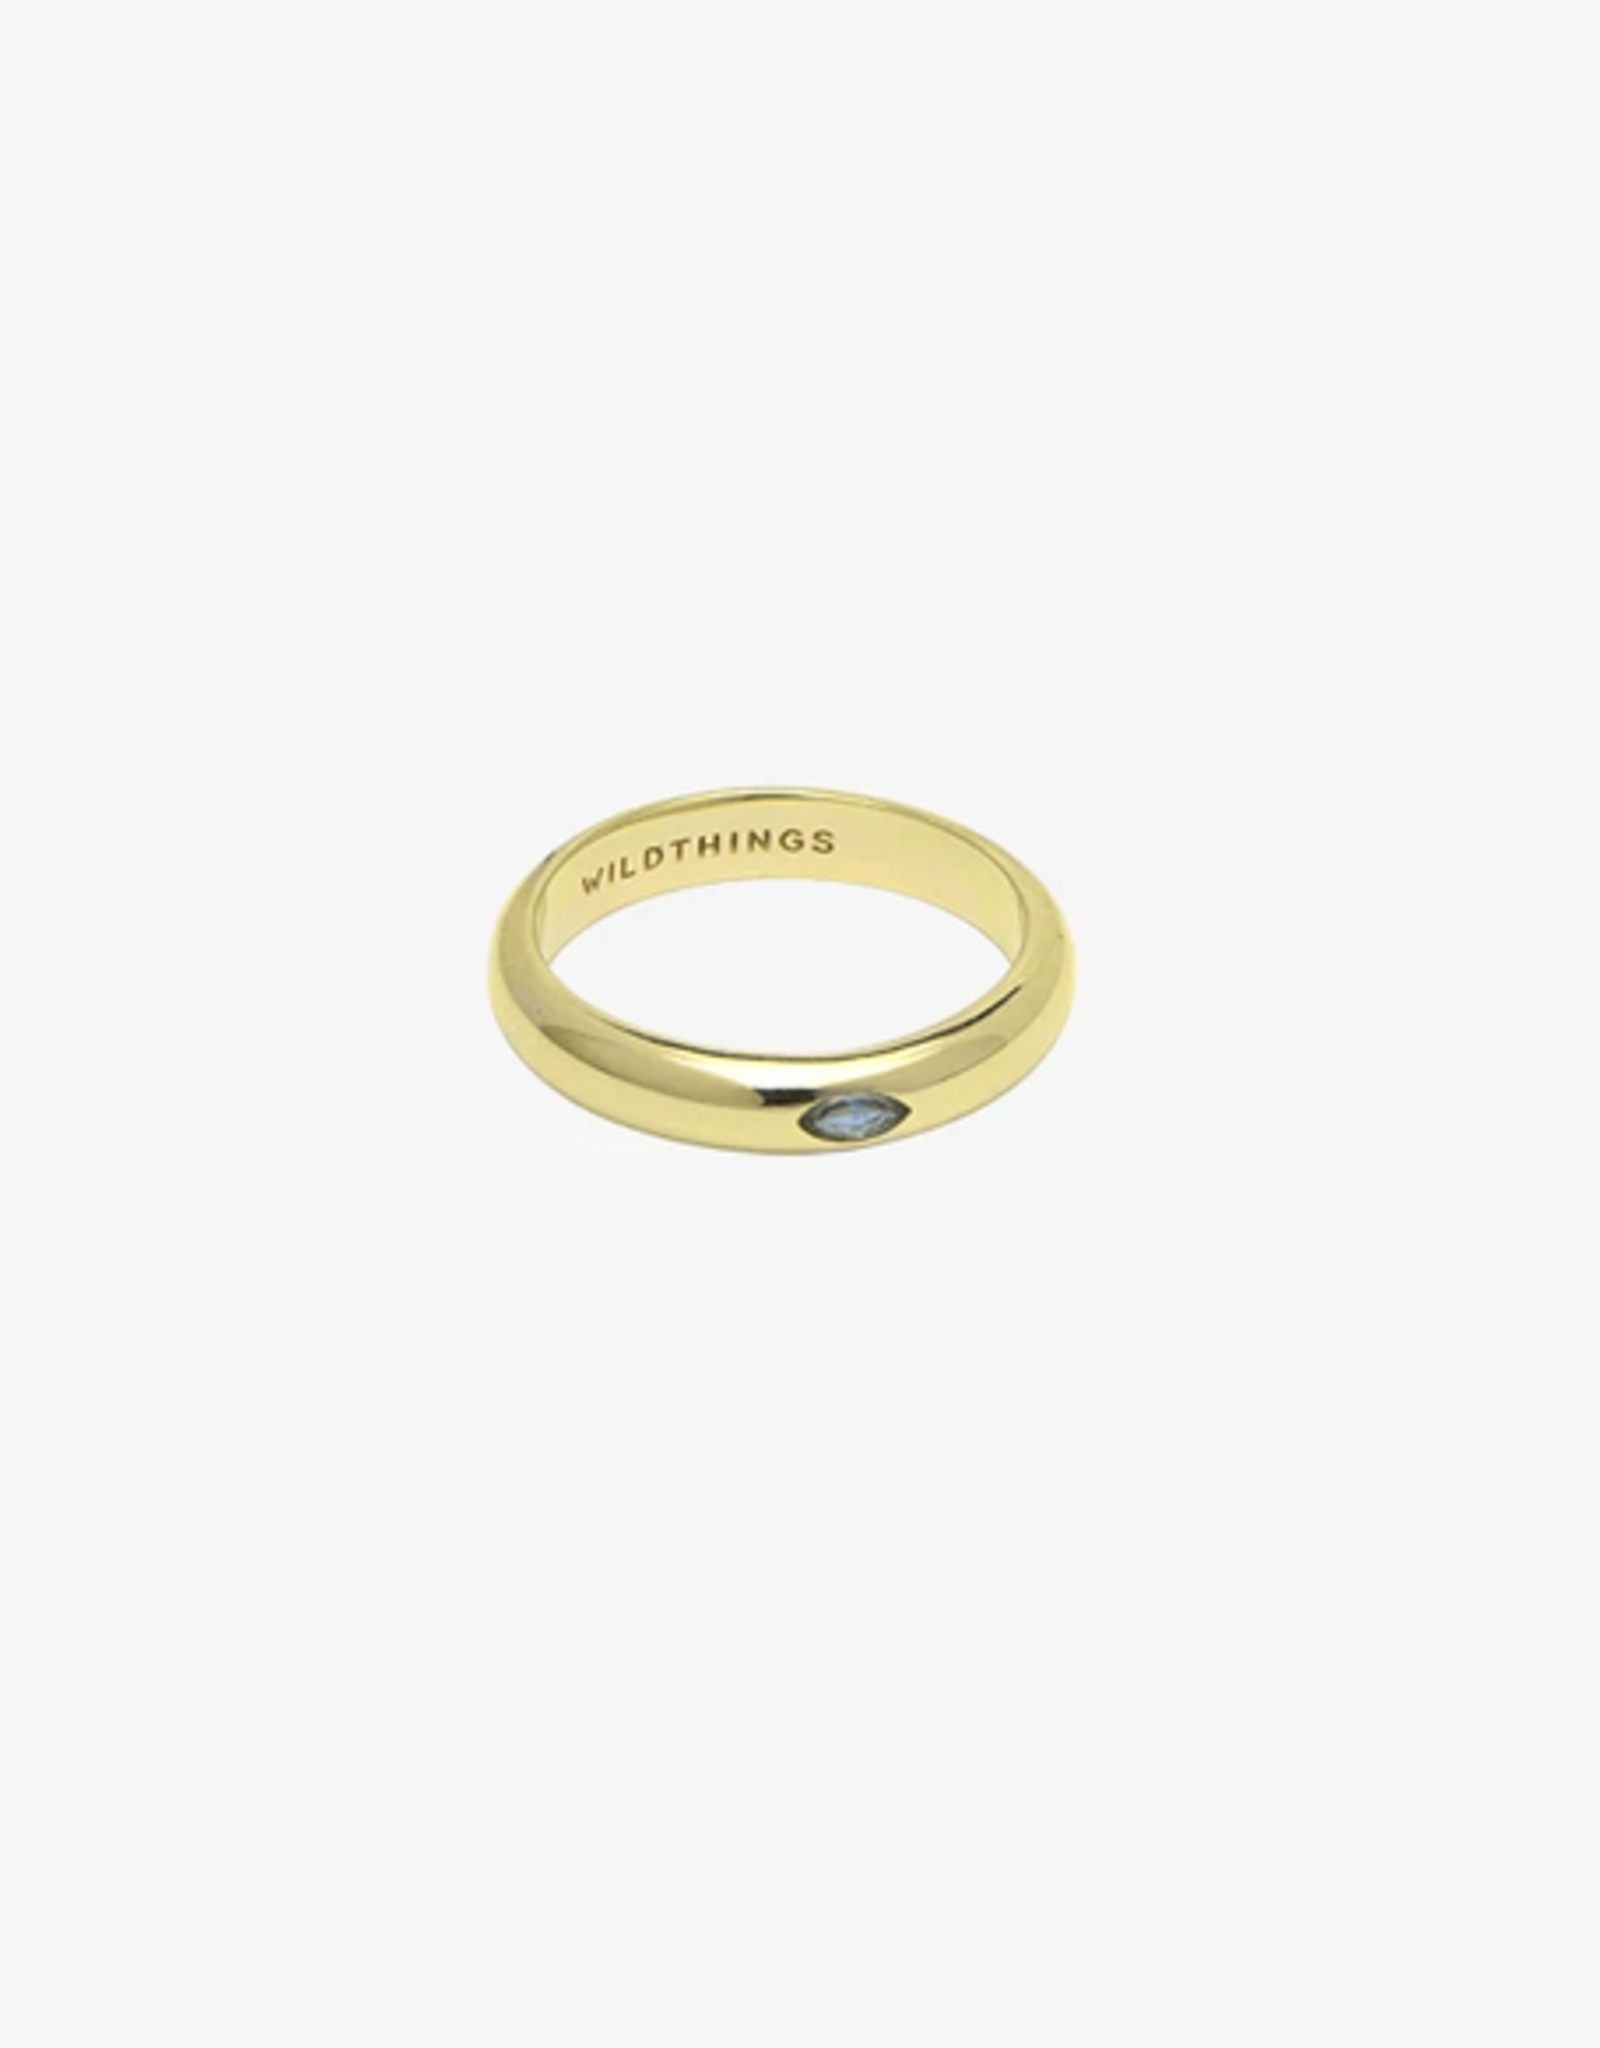 Wildthings Collectables Aquamarine Pebble ring gold - M